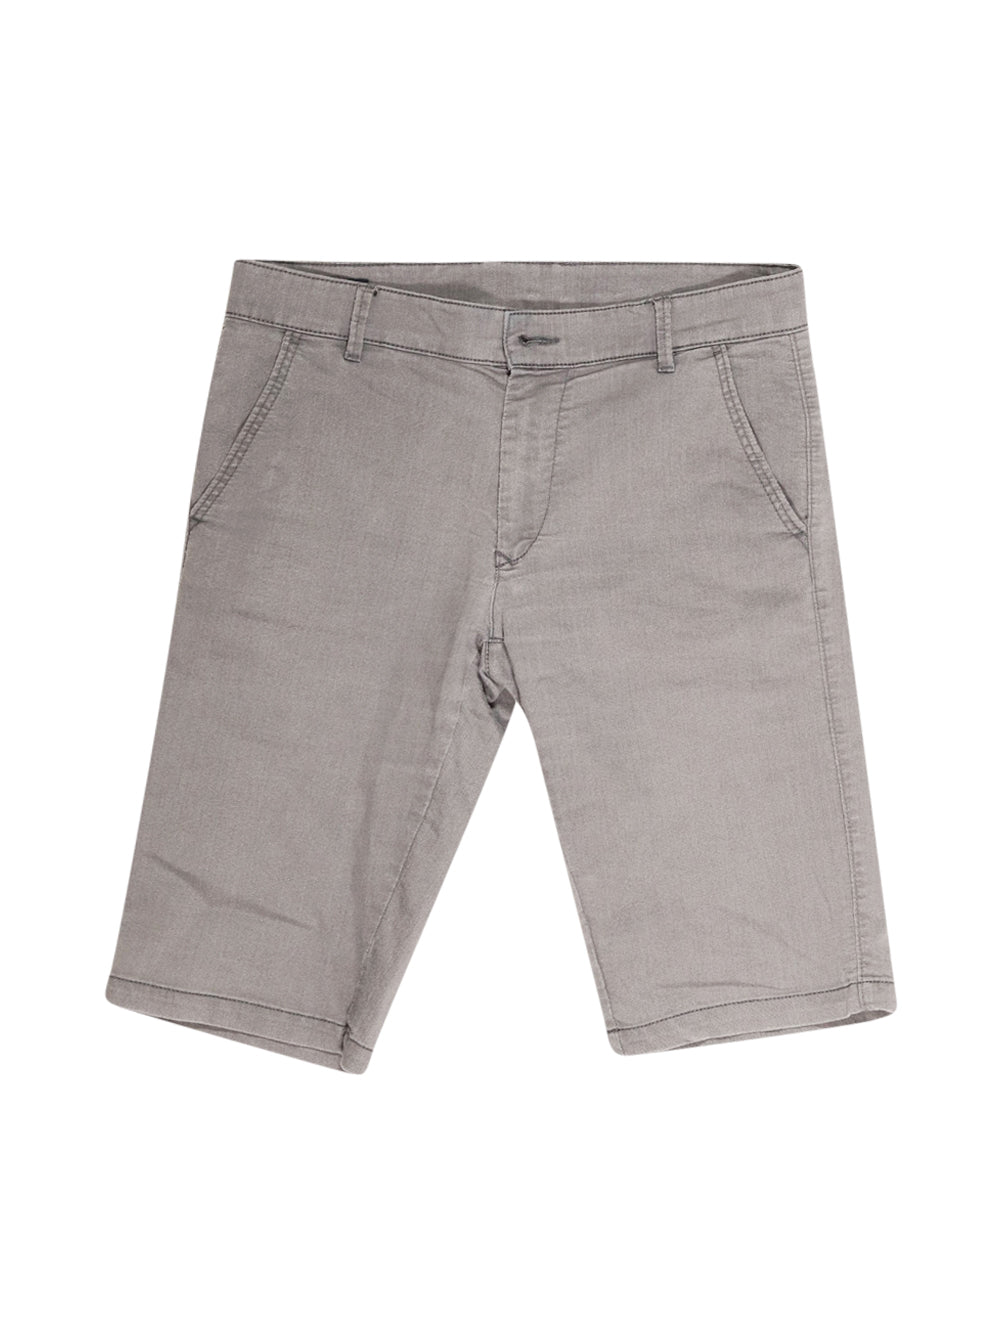 Front photo of Preloved Gas Grey Man's shorts - size 36/S